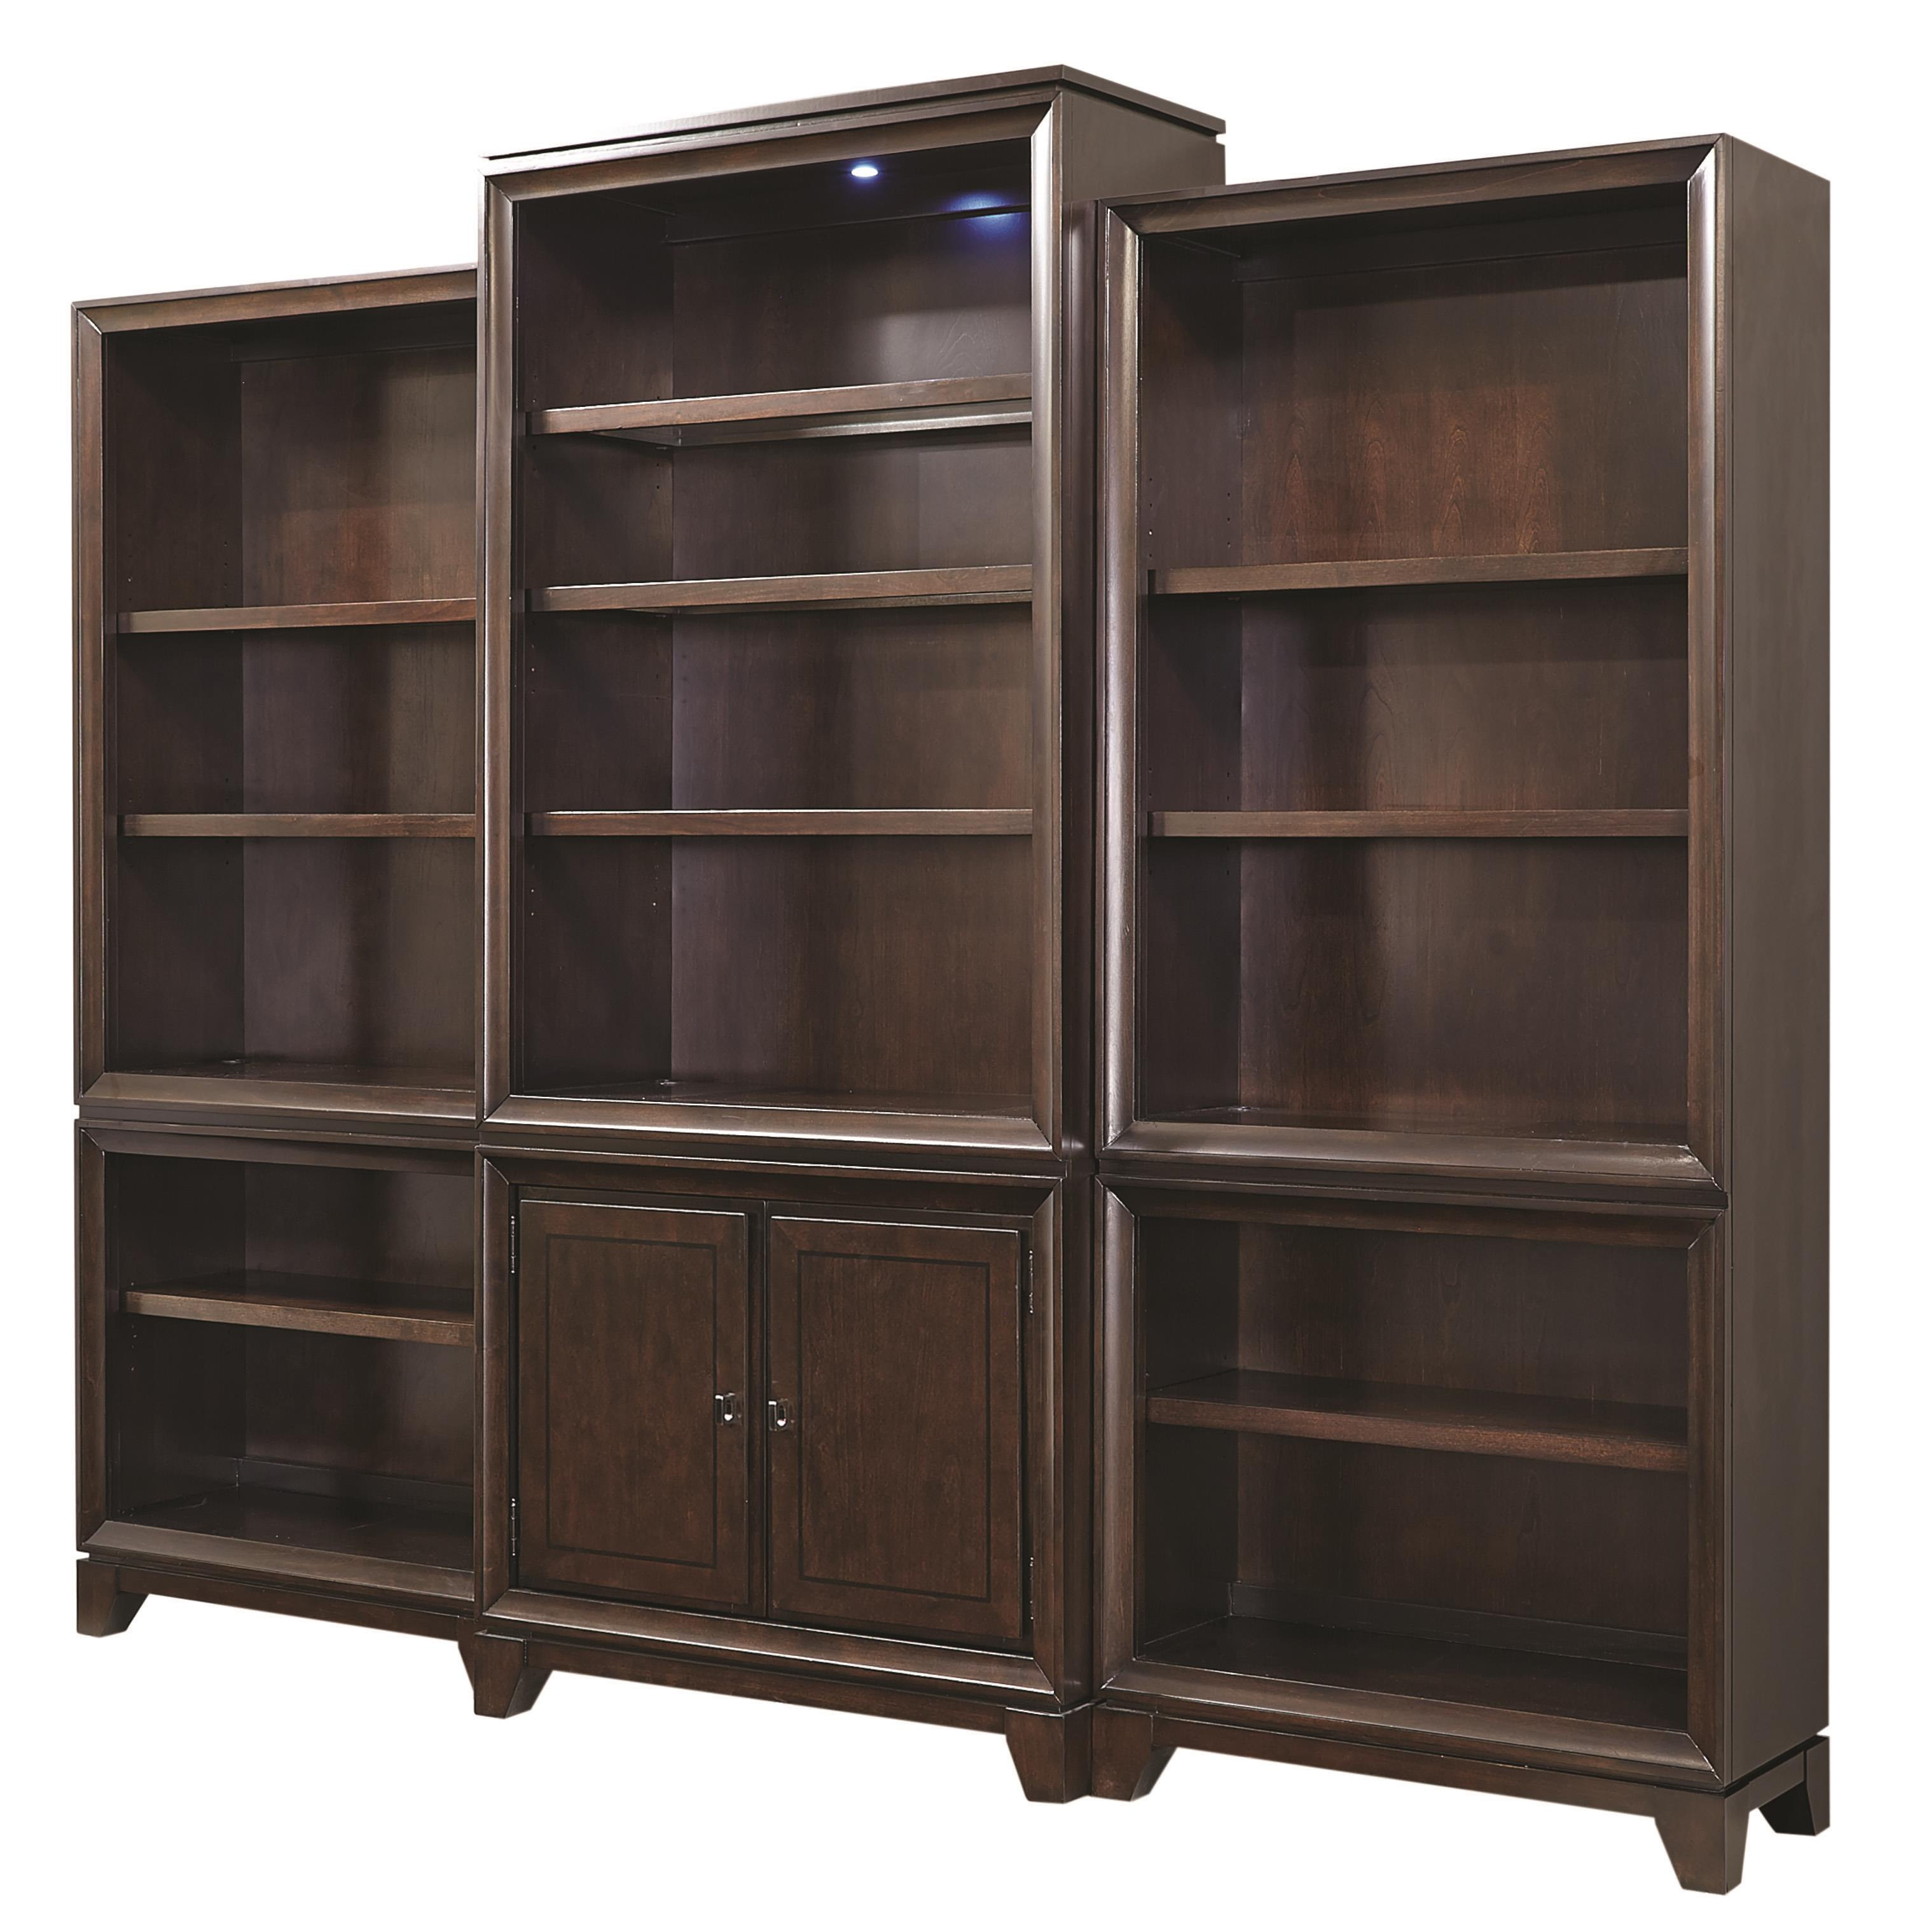 Aspenhome Viewscape Bookcase with Touch Lighting - Item Number: I73-336+2x333